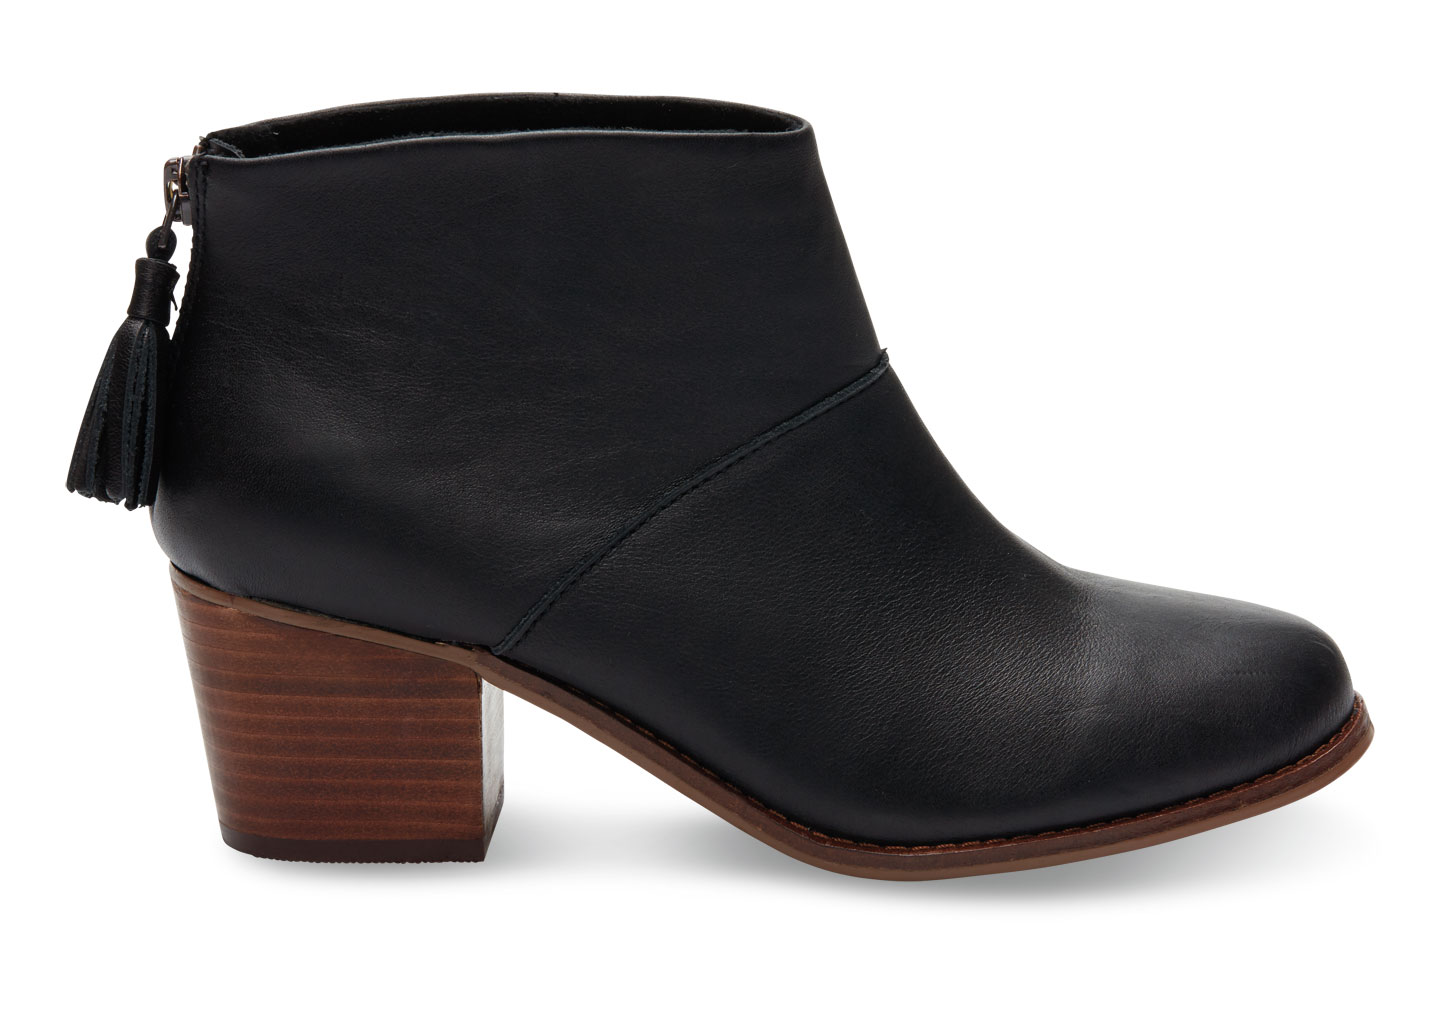 Maintaining Elegance by Sporting the Evergreen black boots for women